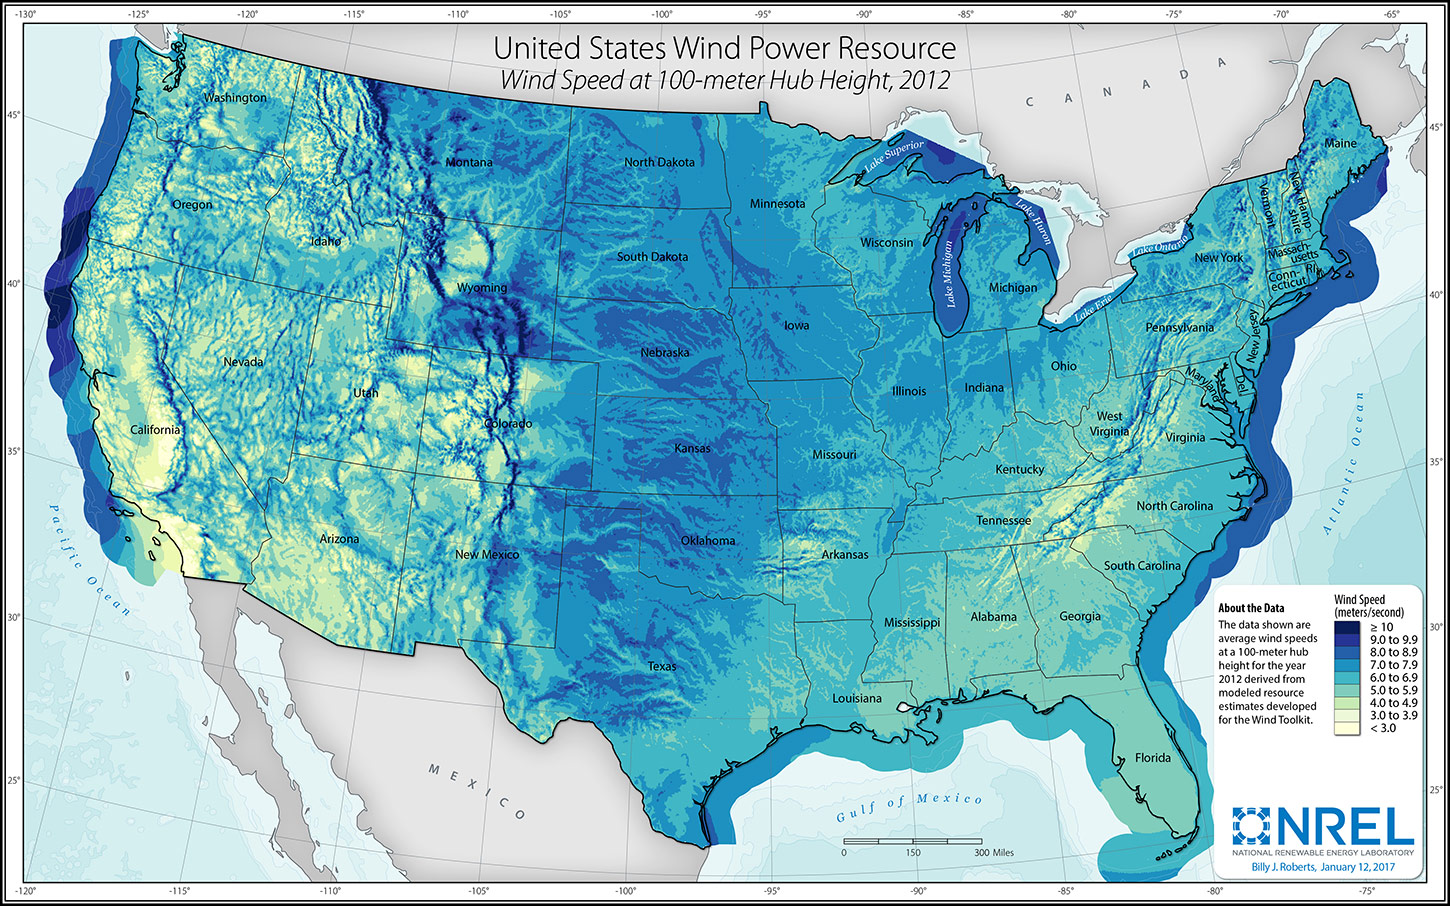 Graphic of a map of wind power resource in the United States, depicting average wind speeds at a 100-meter hub height for the year 2012 derived from modeled resource estimates.